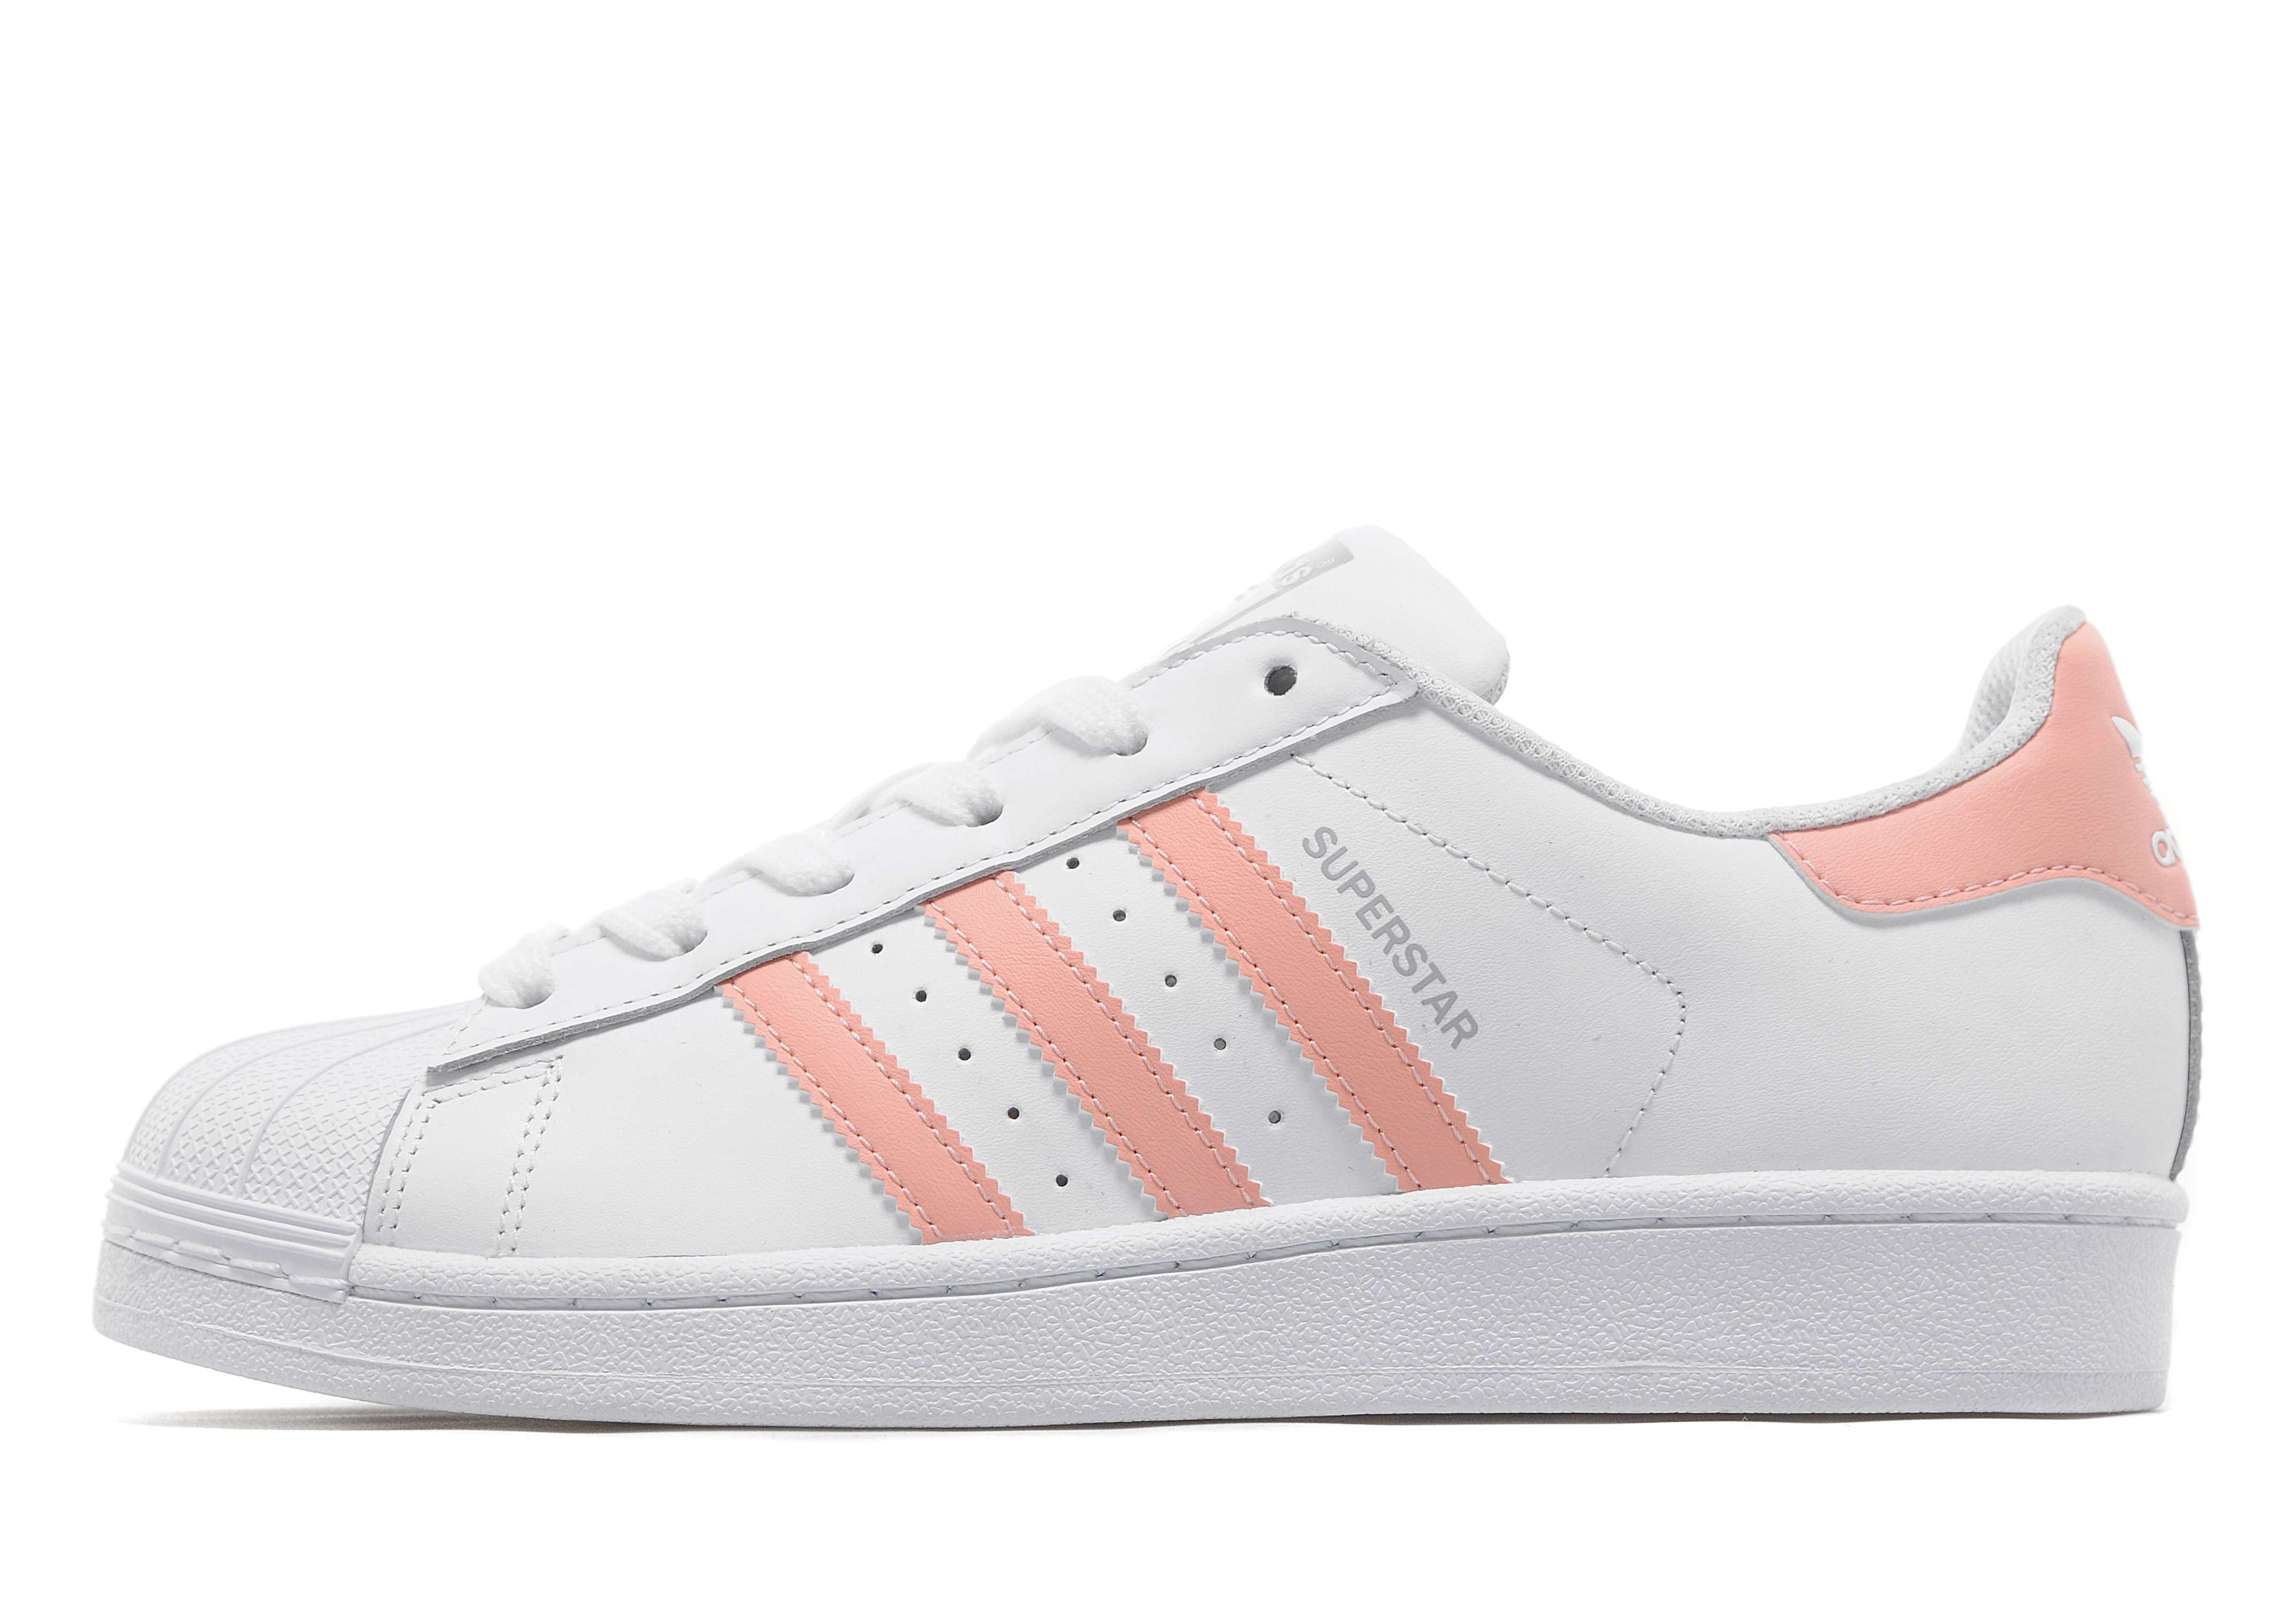 adidas superstar jd exclusive